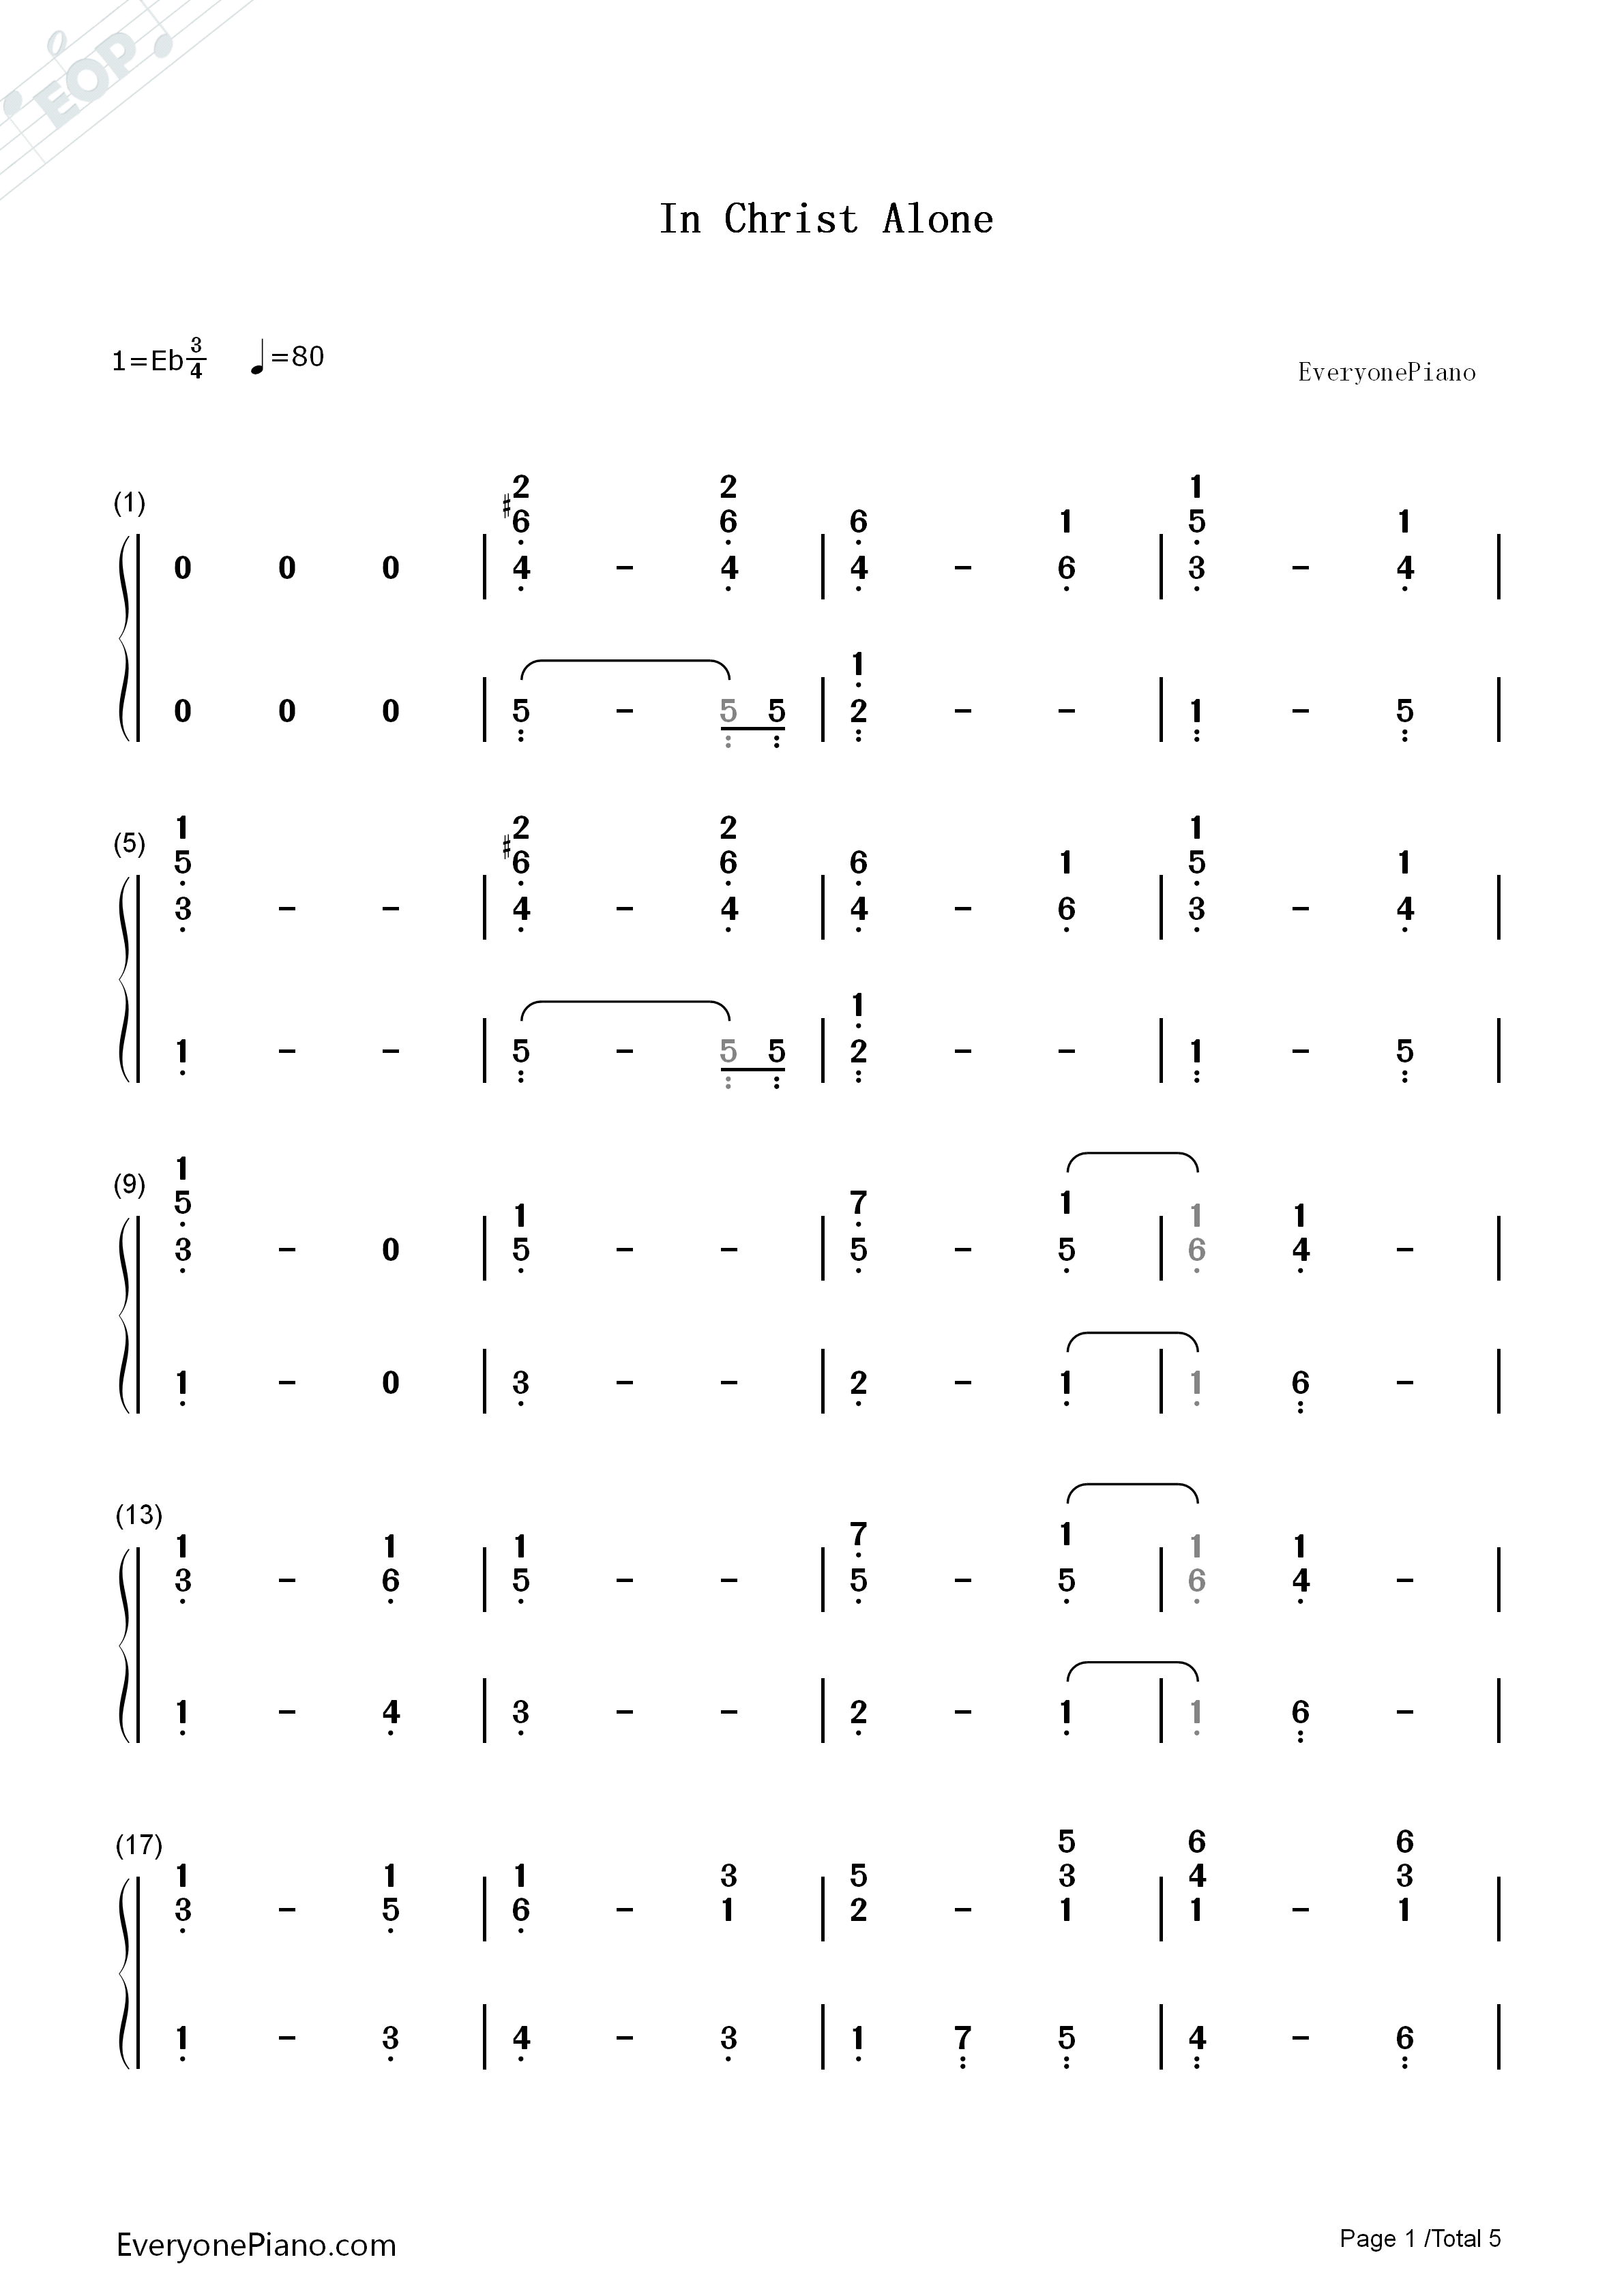 In christ alone owl city numbered musical notation preview 1 free listen now print sheet in christ alone owl city numbered musical notation preview 1 hexwebz Images